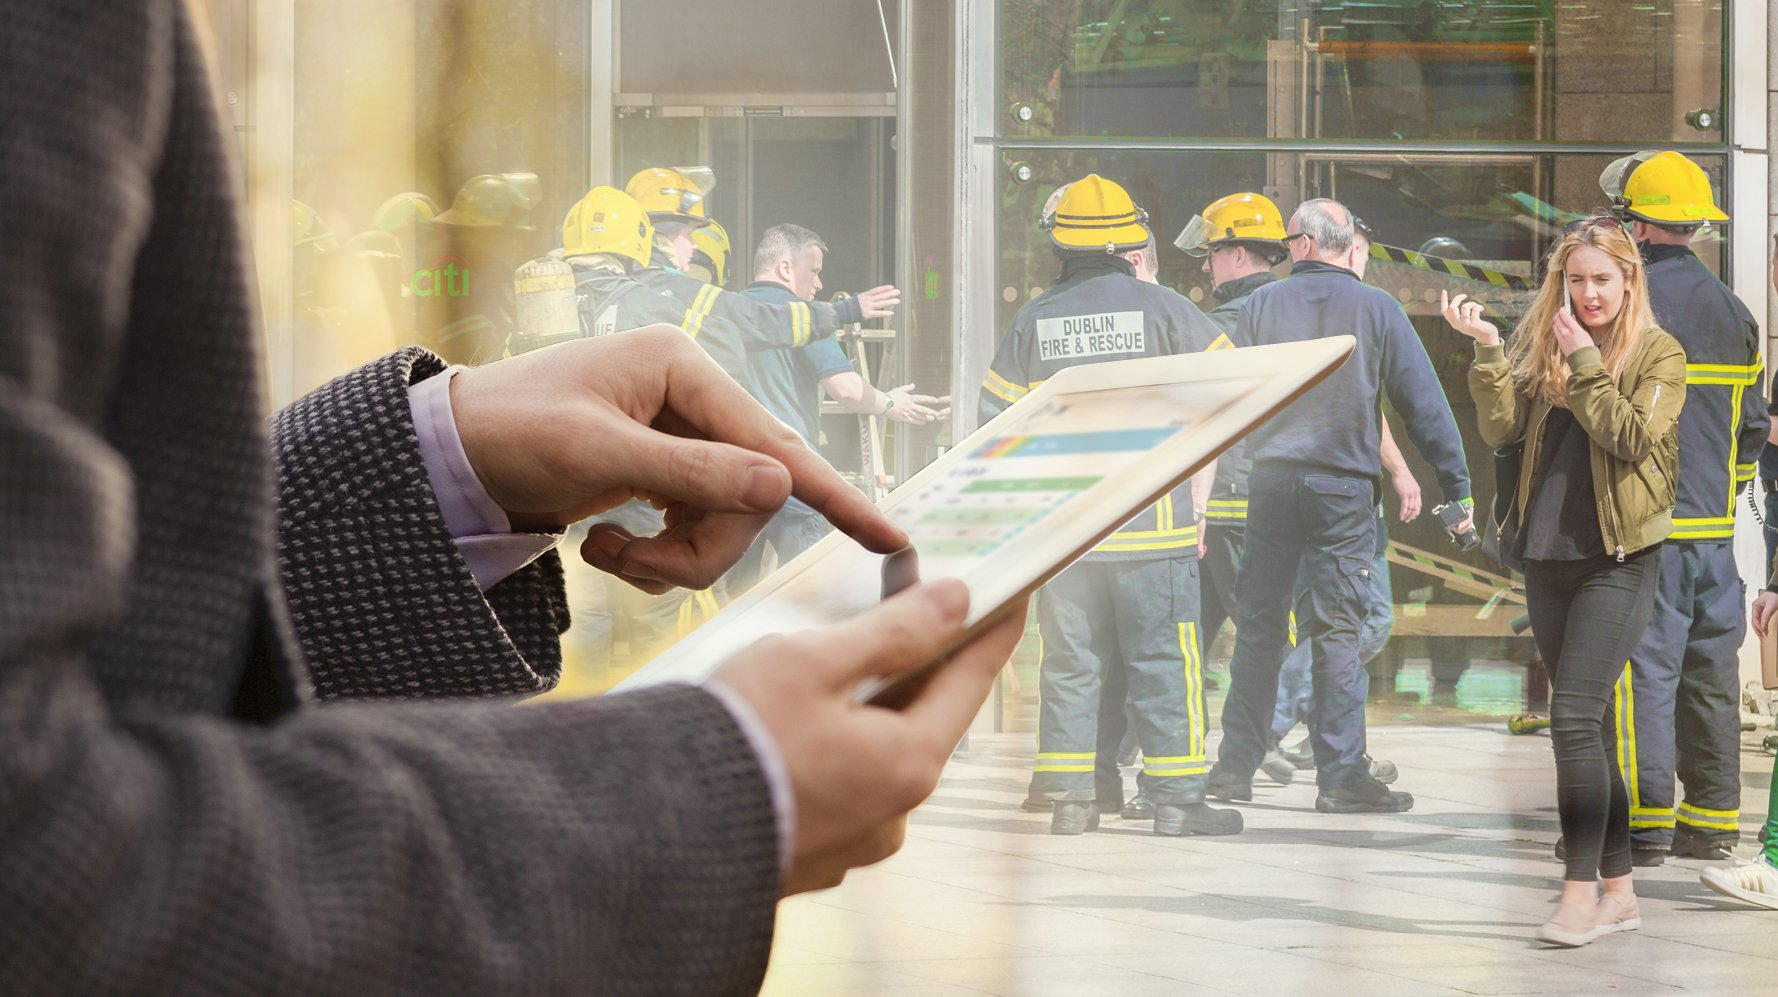 Emergency fire evacuation roll call tracking solutions from real time location